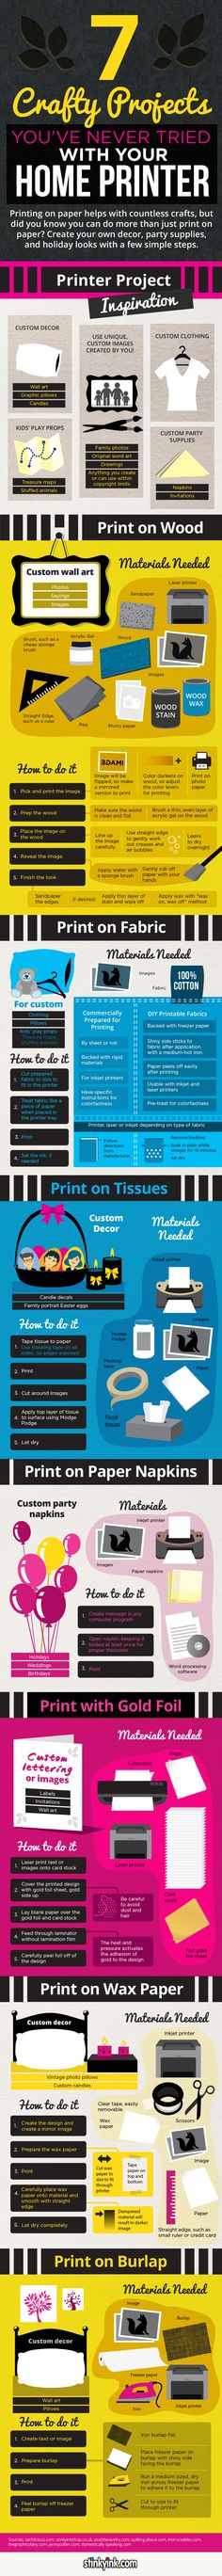 Michi Photostory: 7 Crafty Projects You've Never Tried with your Home Printer